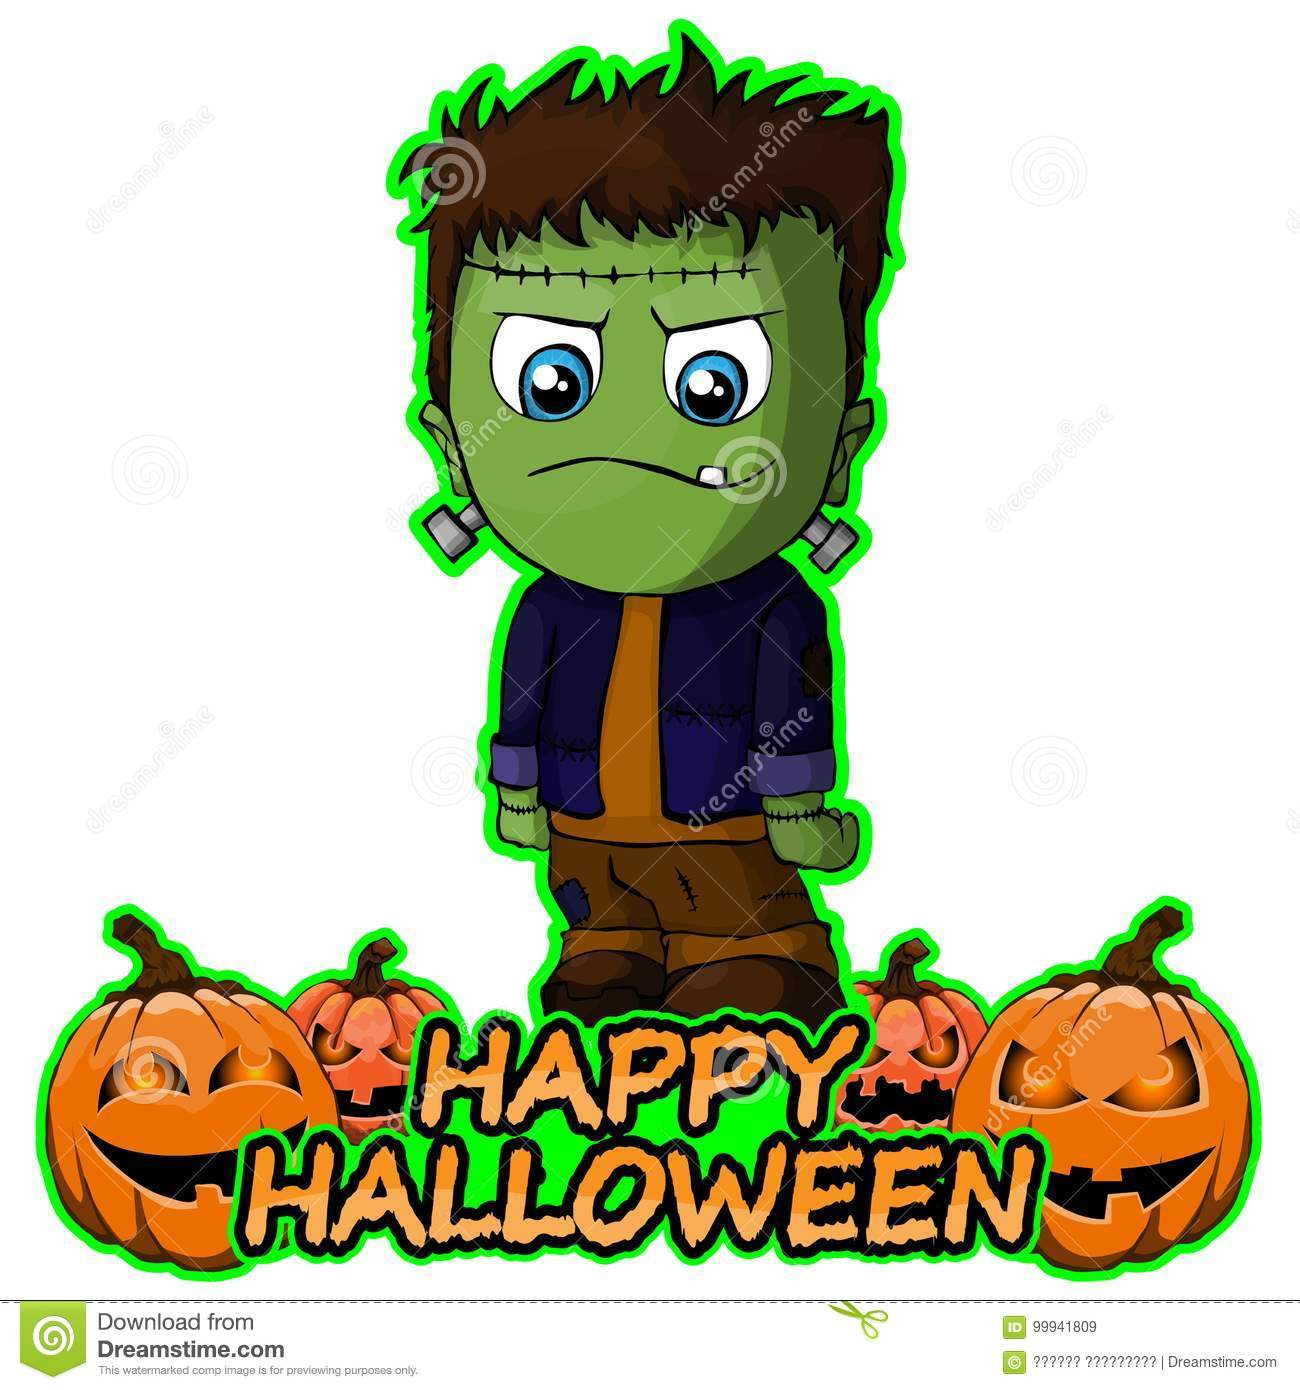 Frankenstein Wishes Happy Halloween On White Background. Royalty Free Vector